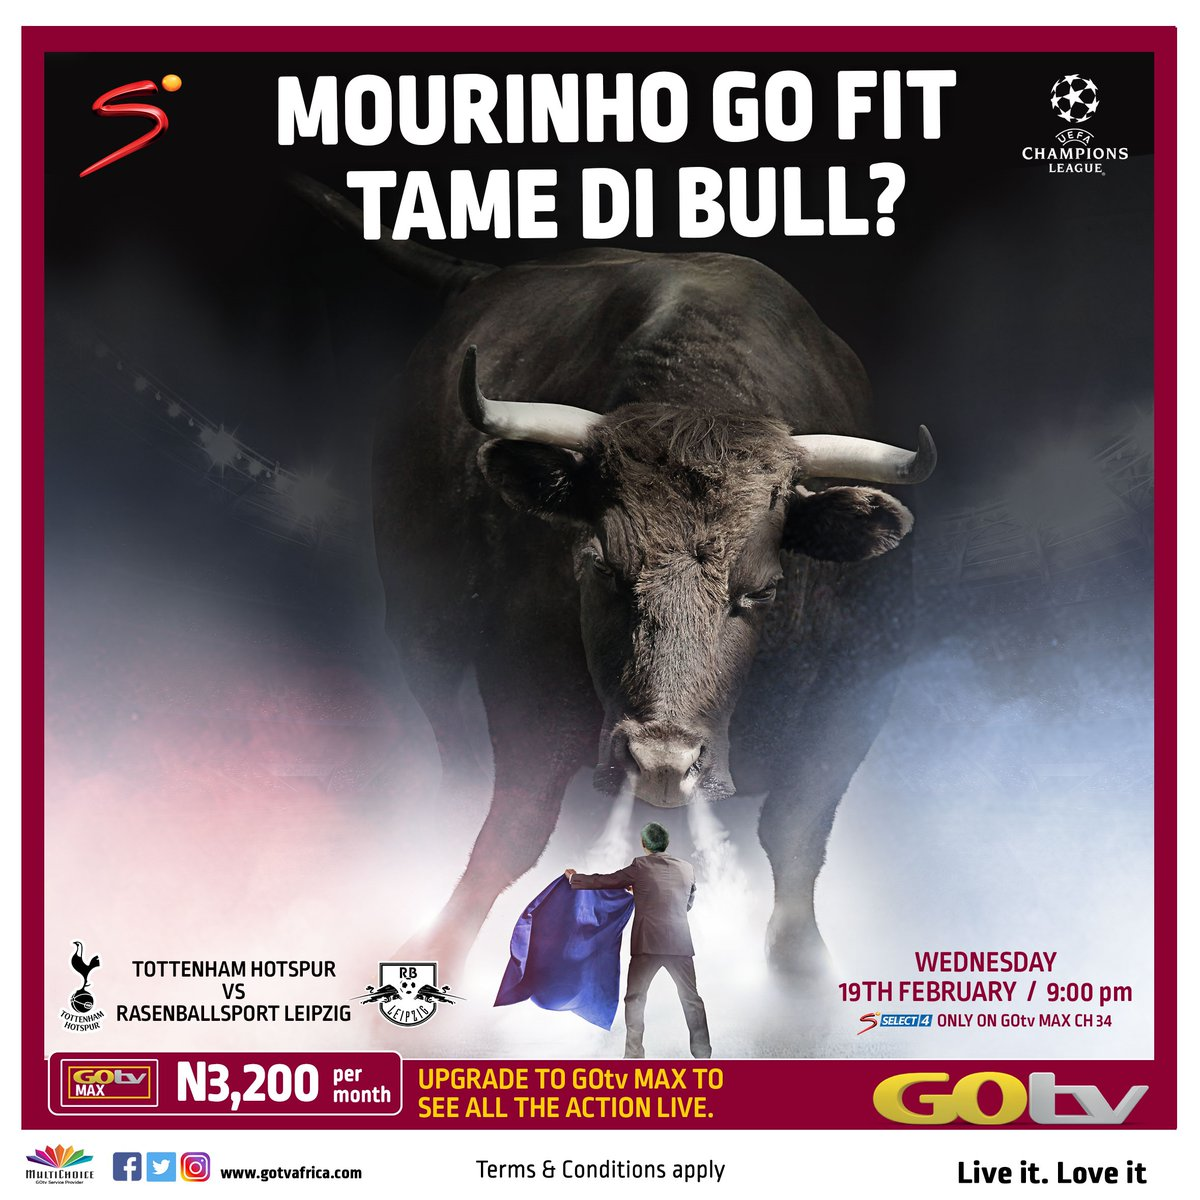 Don't miss live Champions League match on your GOtv.  Spurs finished second to Bayern Munich in Group B to reach the knockout stages for a third season running, while Leipzig topped Group G to reach this stage for the first time.  Watch the match tomorrow on Select 4 (ch 34).<br>http://pic.twitter.com/kqc0BNHwn6